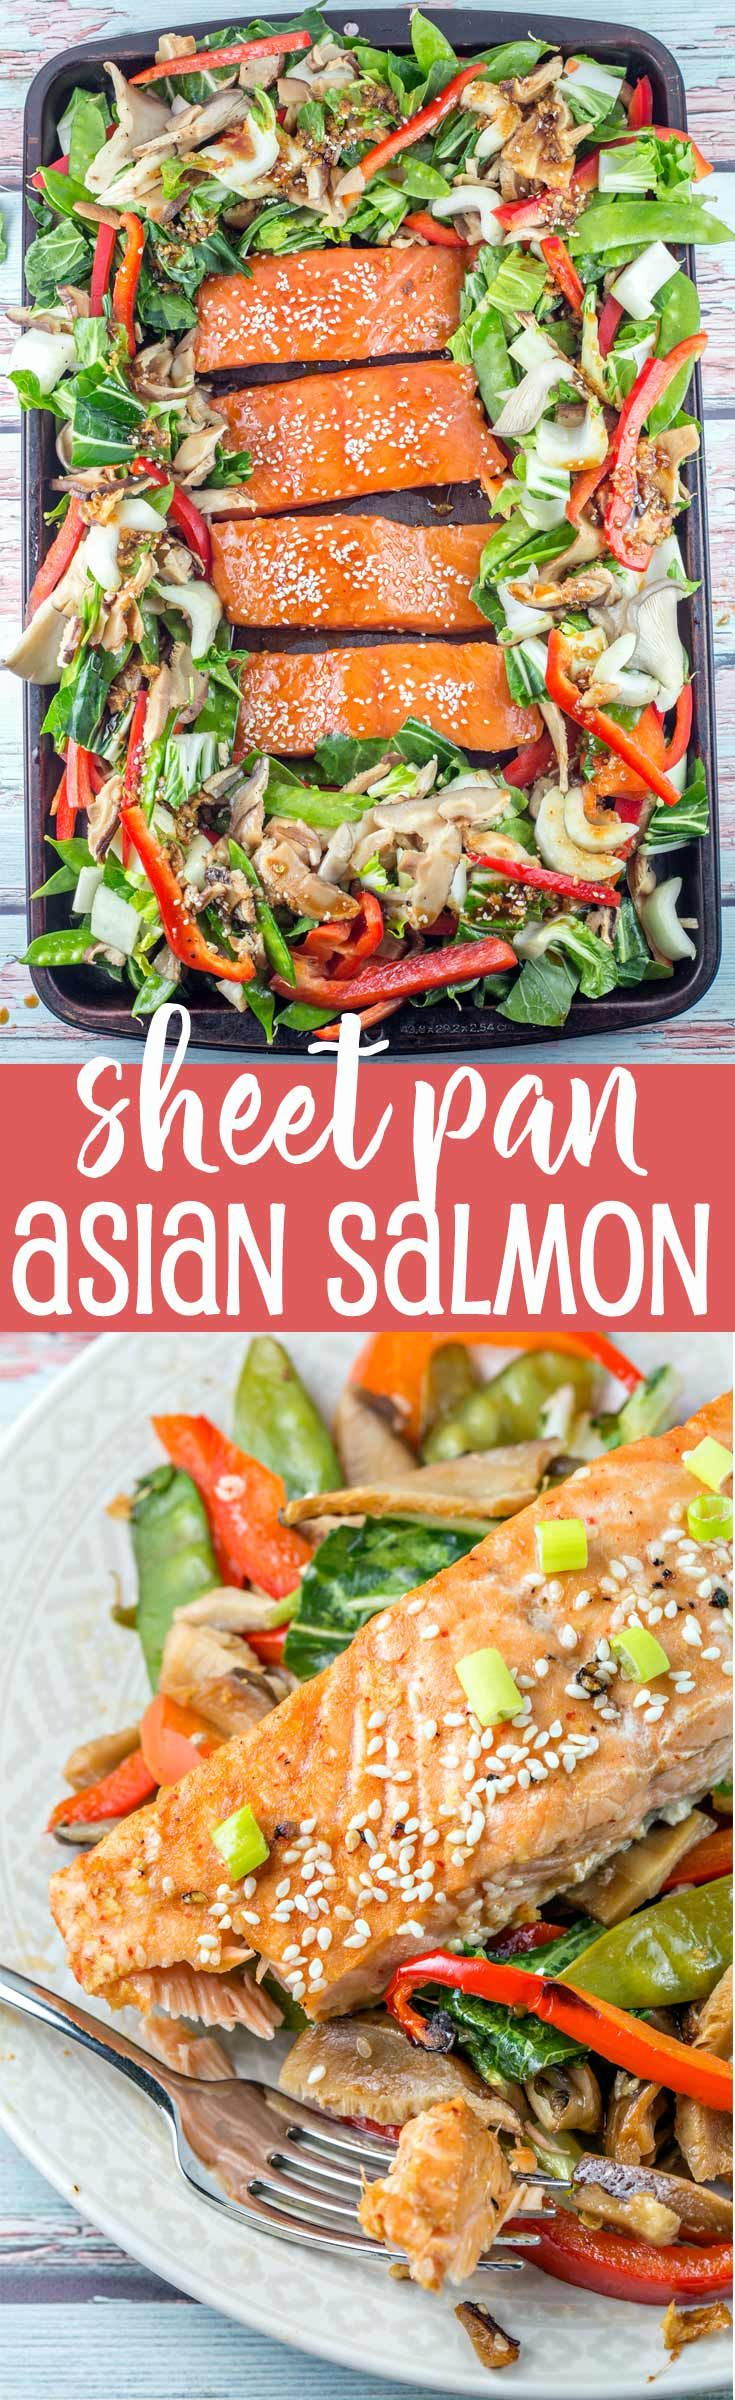 Sheet Pan Asian Salmon: Prep in the morning and bake in the evening.  One pan and 12 minutes is all you need for a delicious, healthy, vegetable heavy dinner. {Bunsen Burner Bakery} via @bnsnbrnrbakery